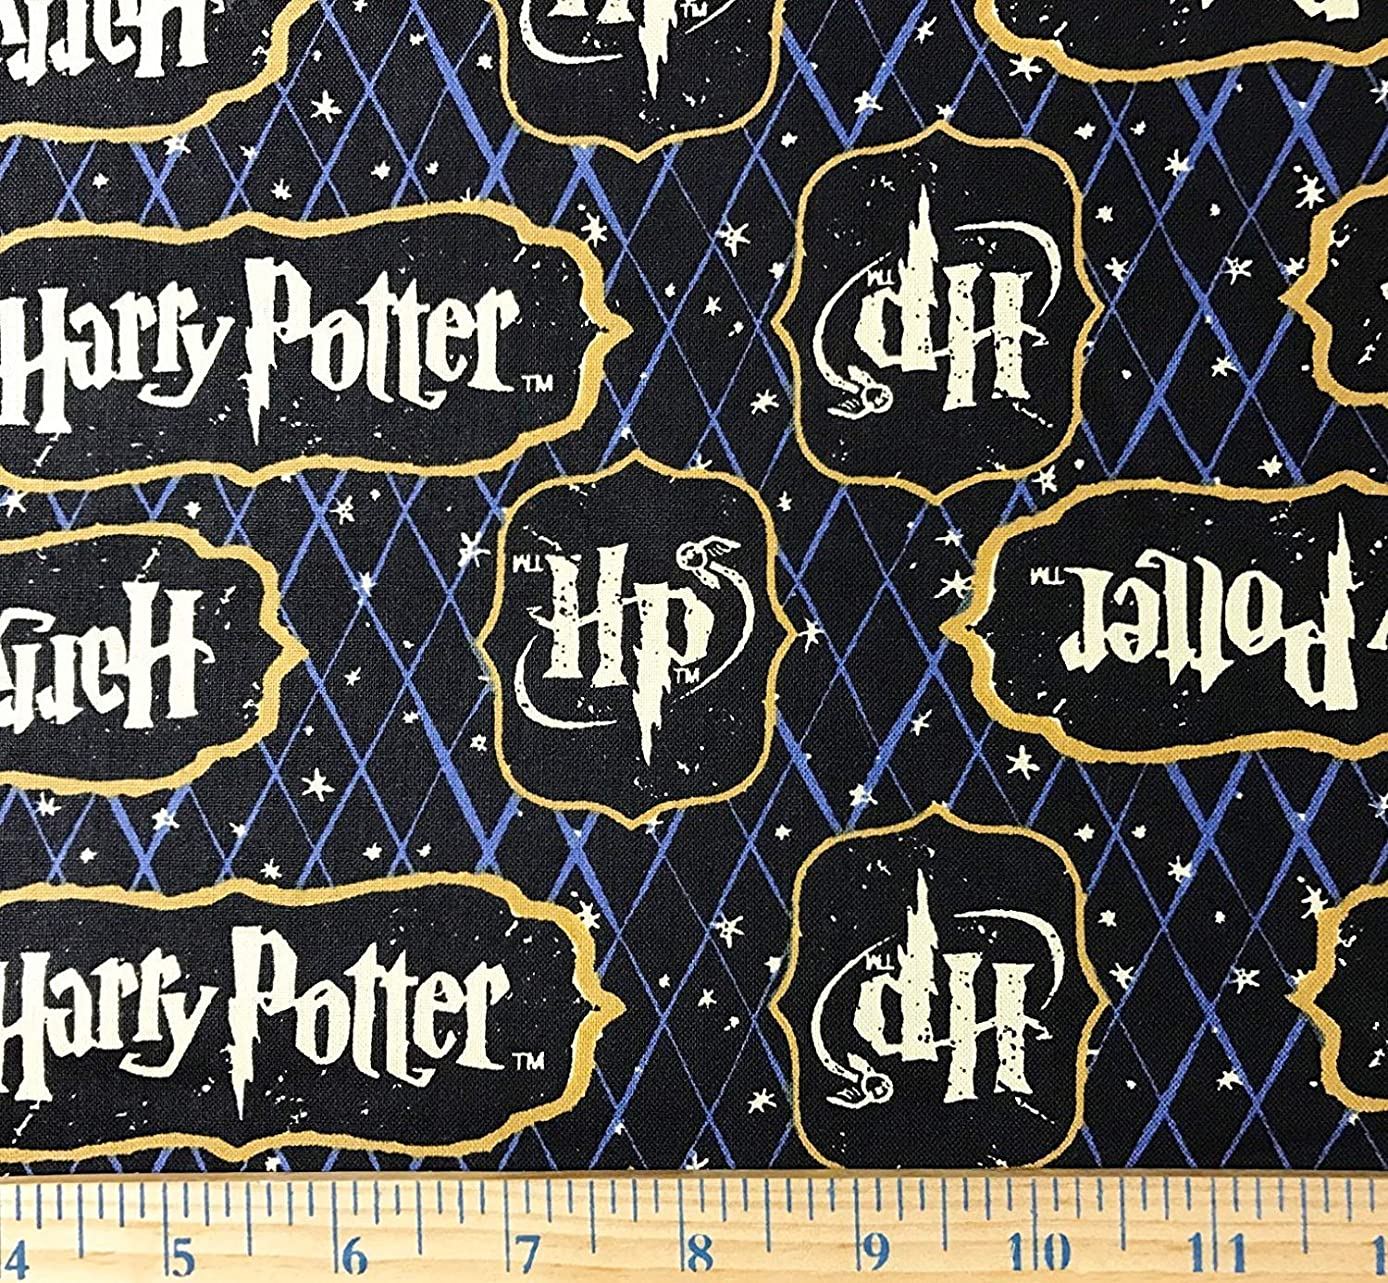 PreCut 1 Yard - Harry Potter Logo on Navy Blue Lattice Cotton Fabric - Officially Licensed (Great for Quilting, Sewing, Craft Projects, Throw Blankets & More) Pre-Cut 1 Yard X 44